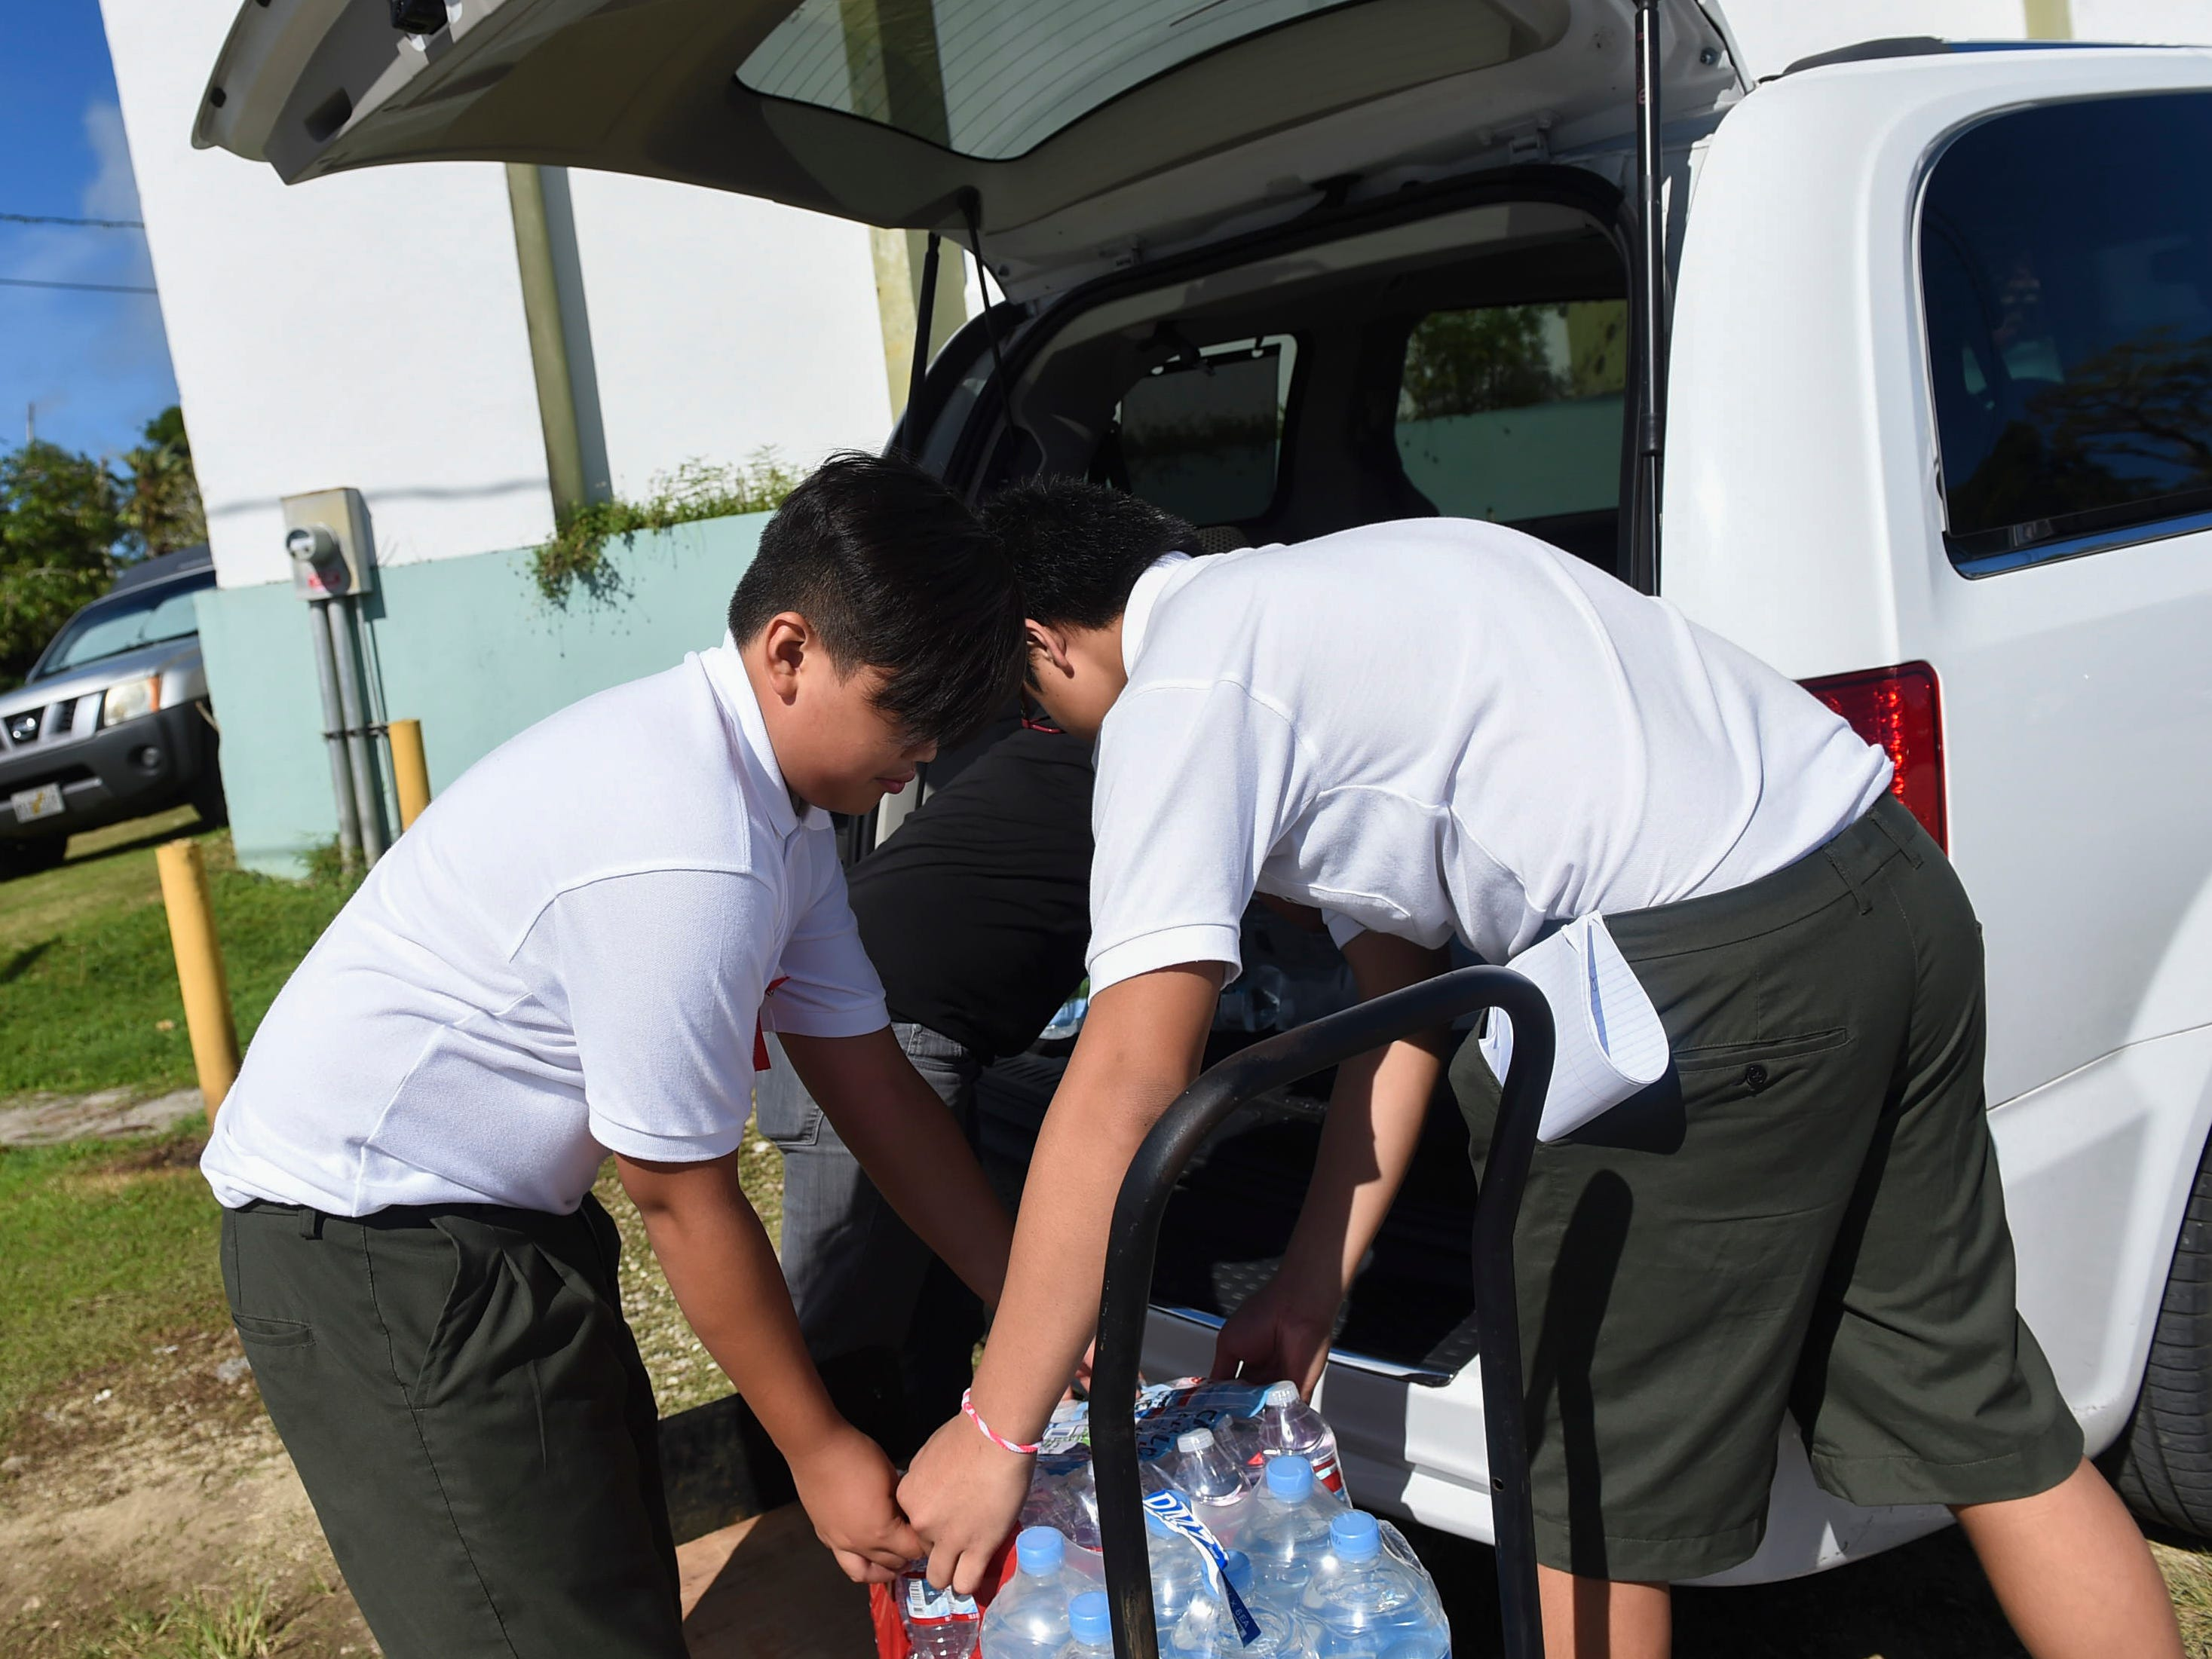 San Vicente Catholic School students Bryce Anthony Cruz Sablan, 12, left, and Brendon C. Santos Cellona 13, unload cases of bottled water for a Super Typhoon Yutu relief effort at the San Vicente Catholic School campus, Oct. 29, 2018.